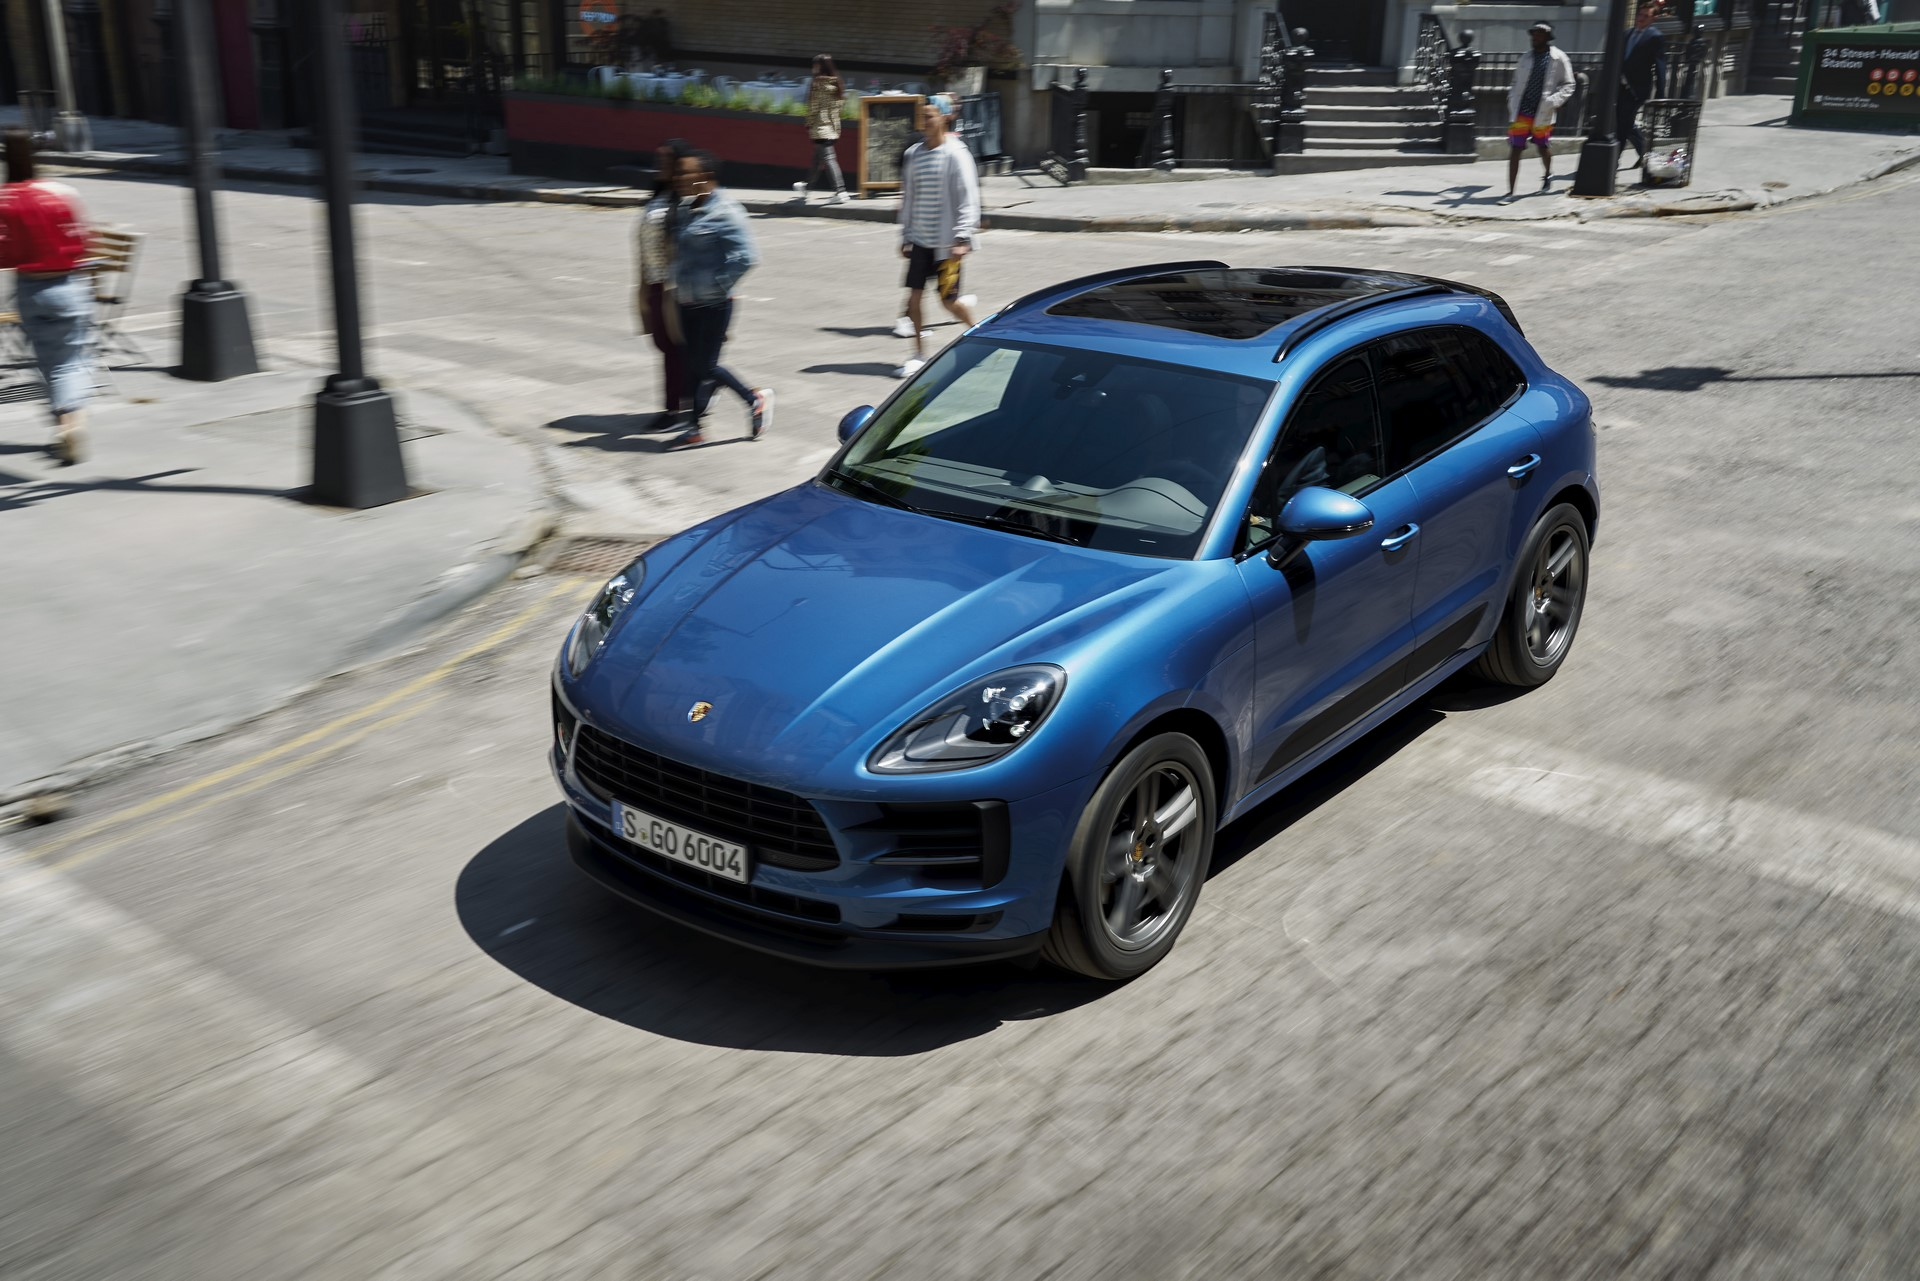 Porsche Macan Facelift Debut (2)